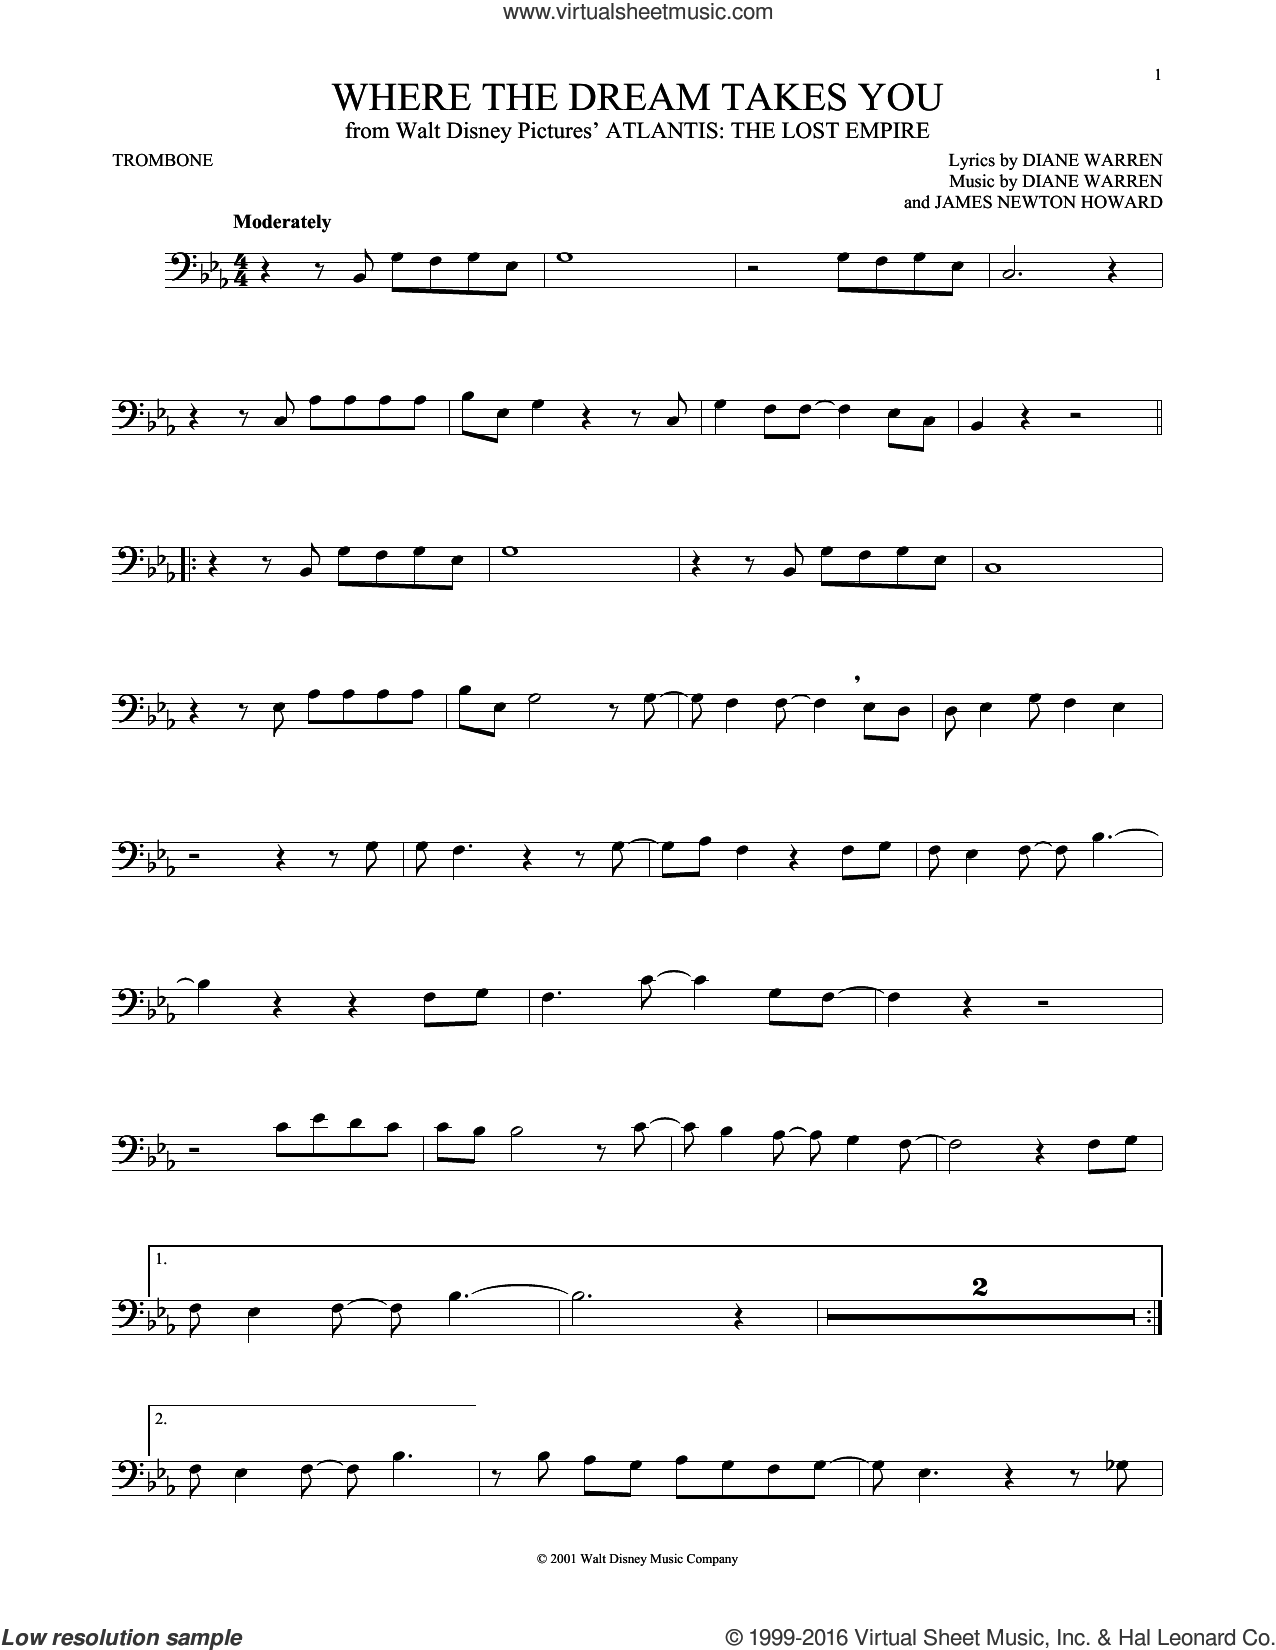 Where The Dream Takes You sheet music for trombone solo by Diane Warren and James Newton Howard, intermediate trombone. Score Image Preview.